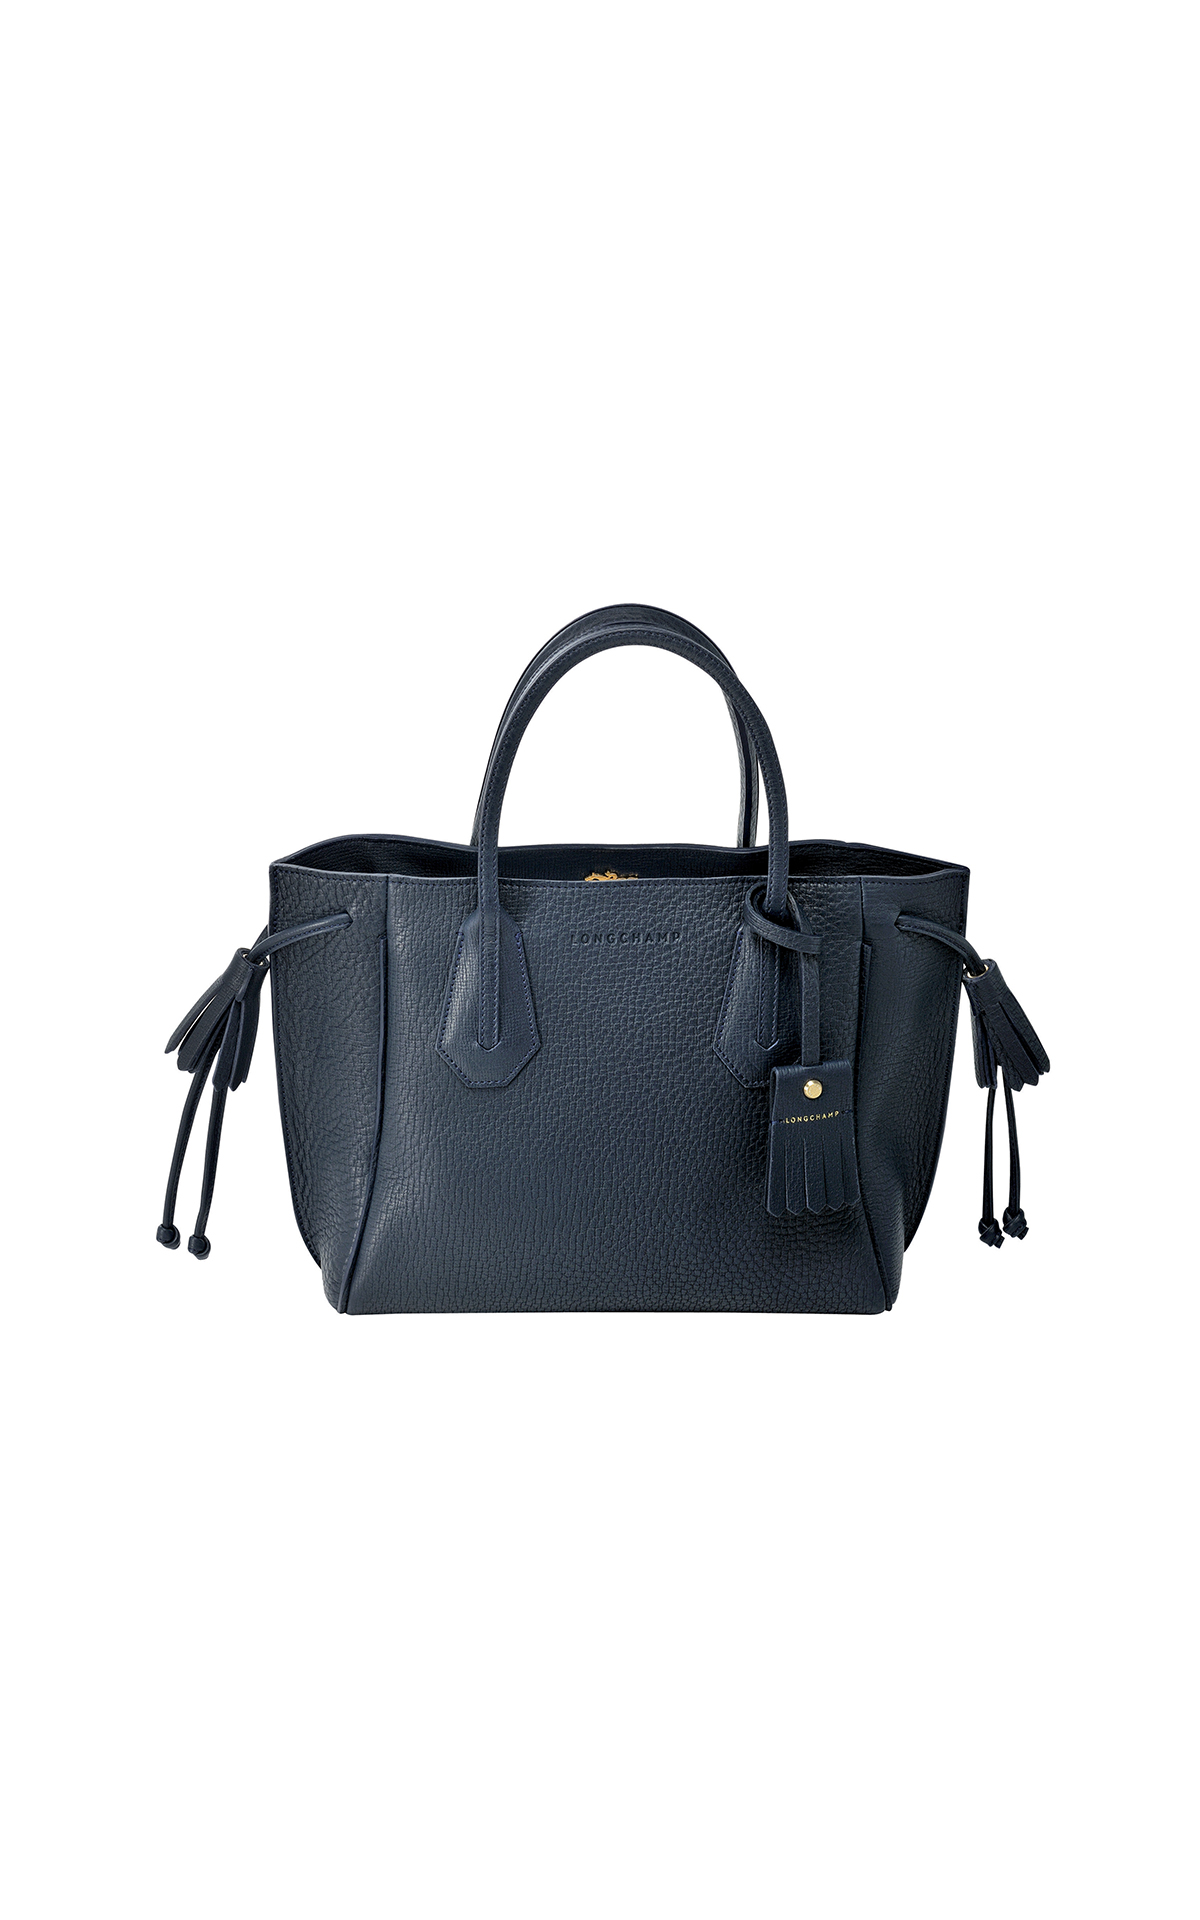 Longchamp Penelope leather tote in midnight blue from Bicester Village